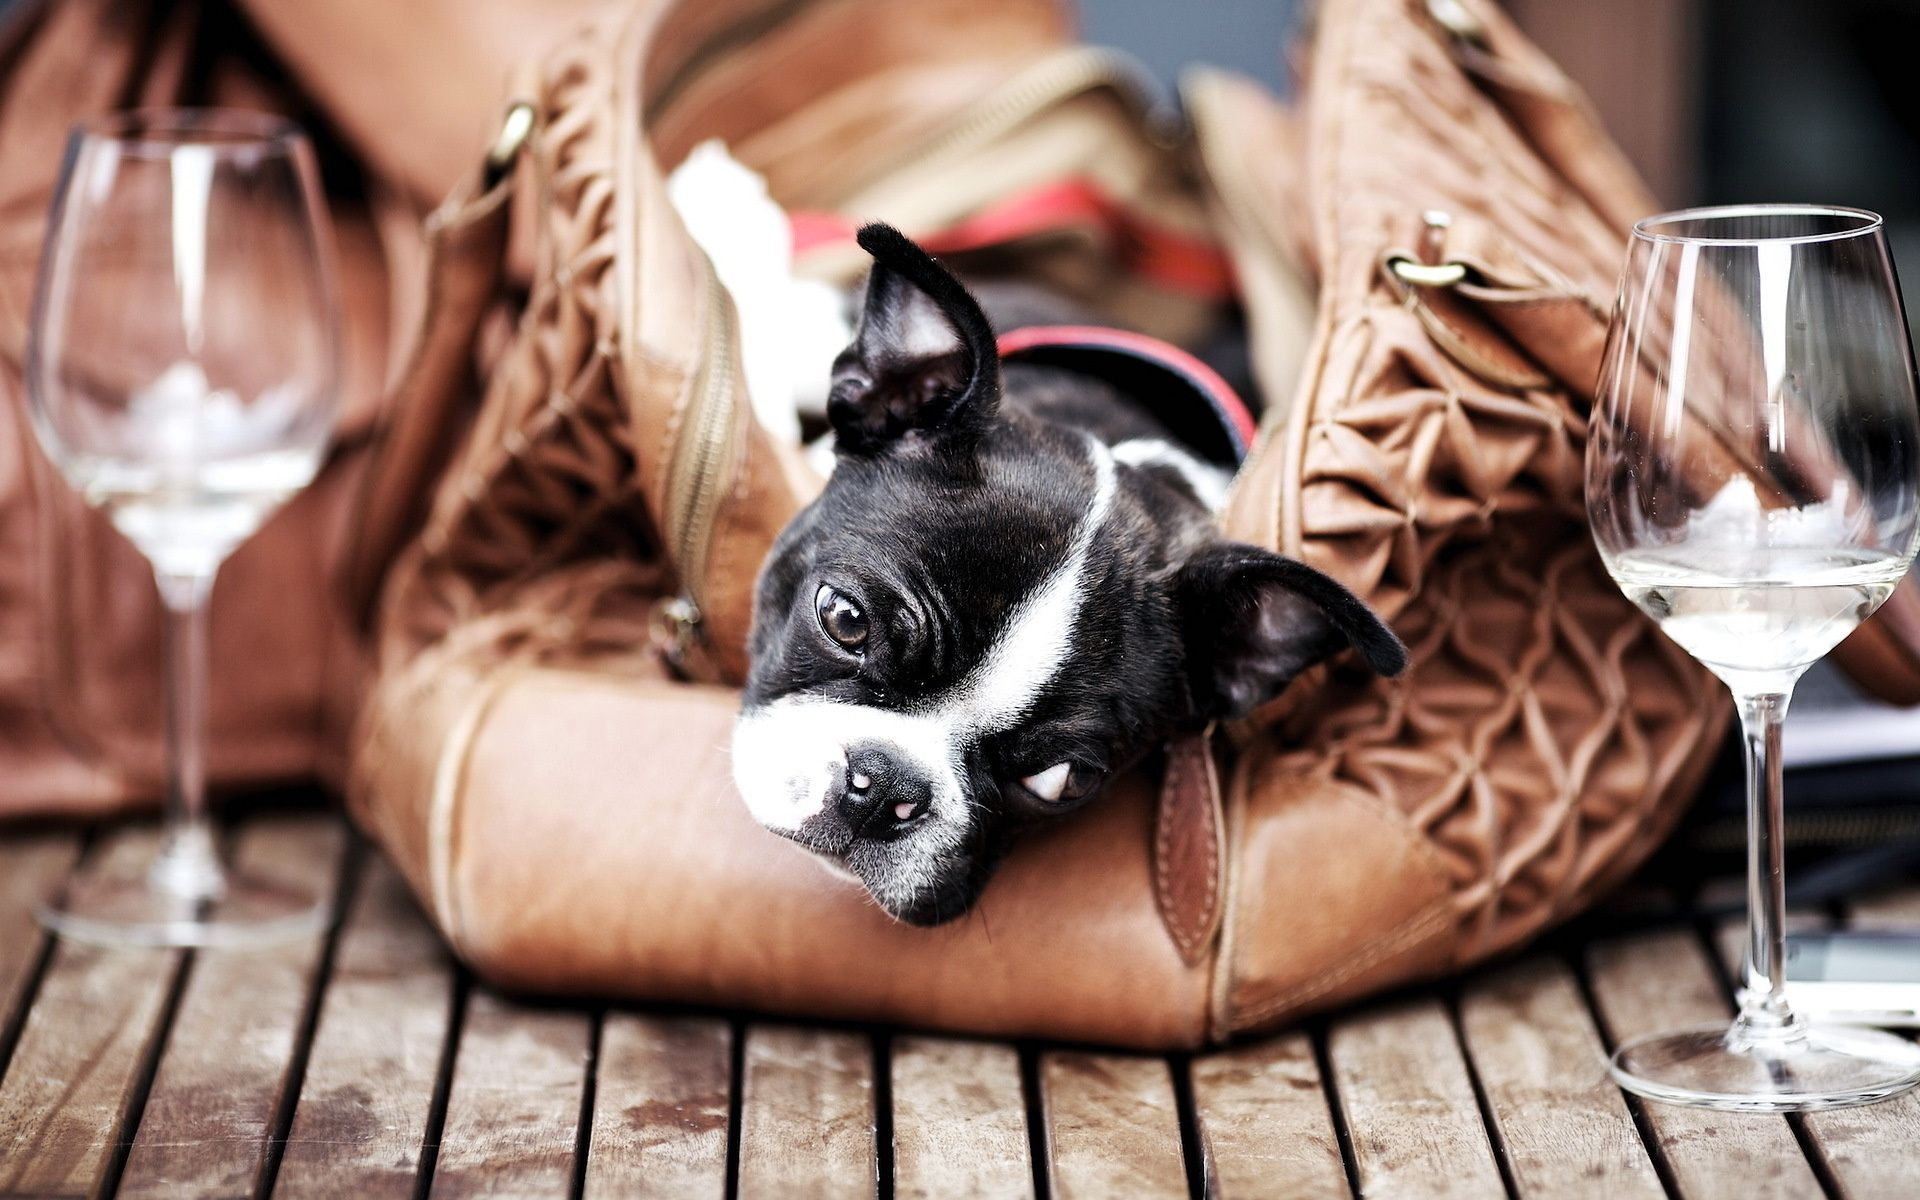 Wallpaper boston terrier, dog, glass, bag, floor desktop wallpaper ...